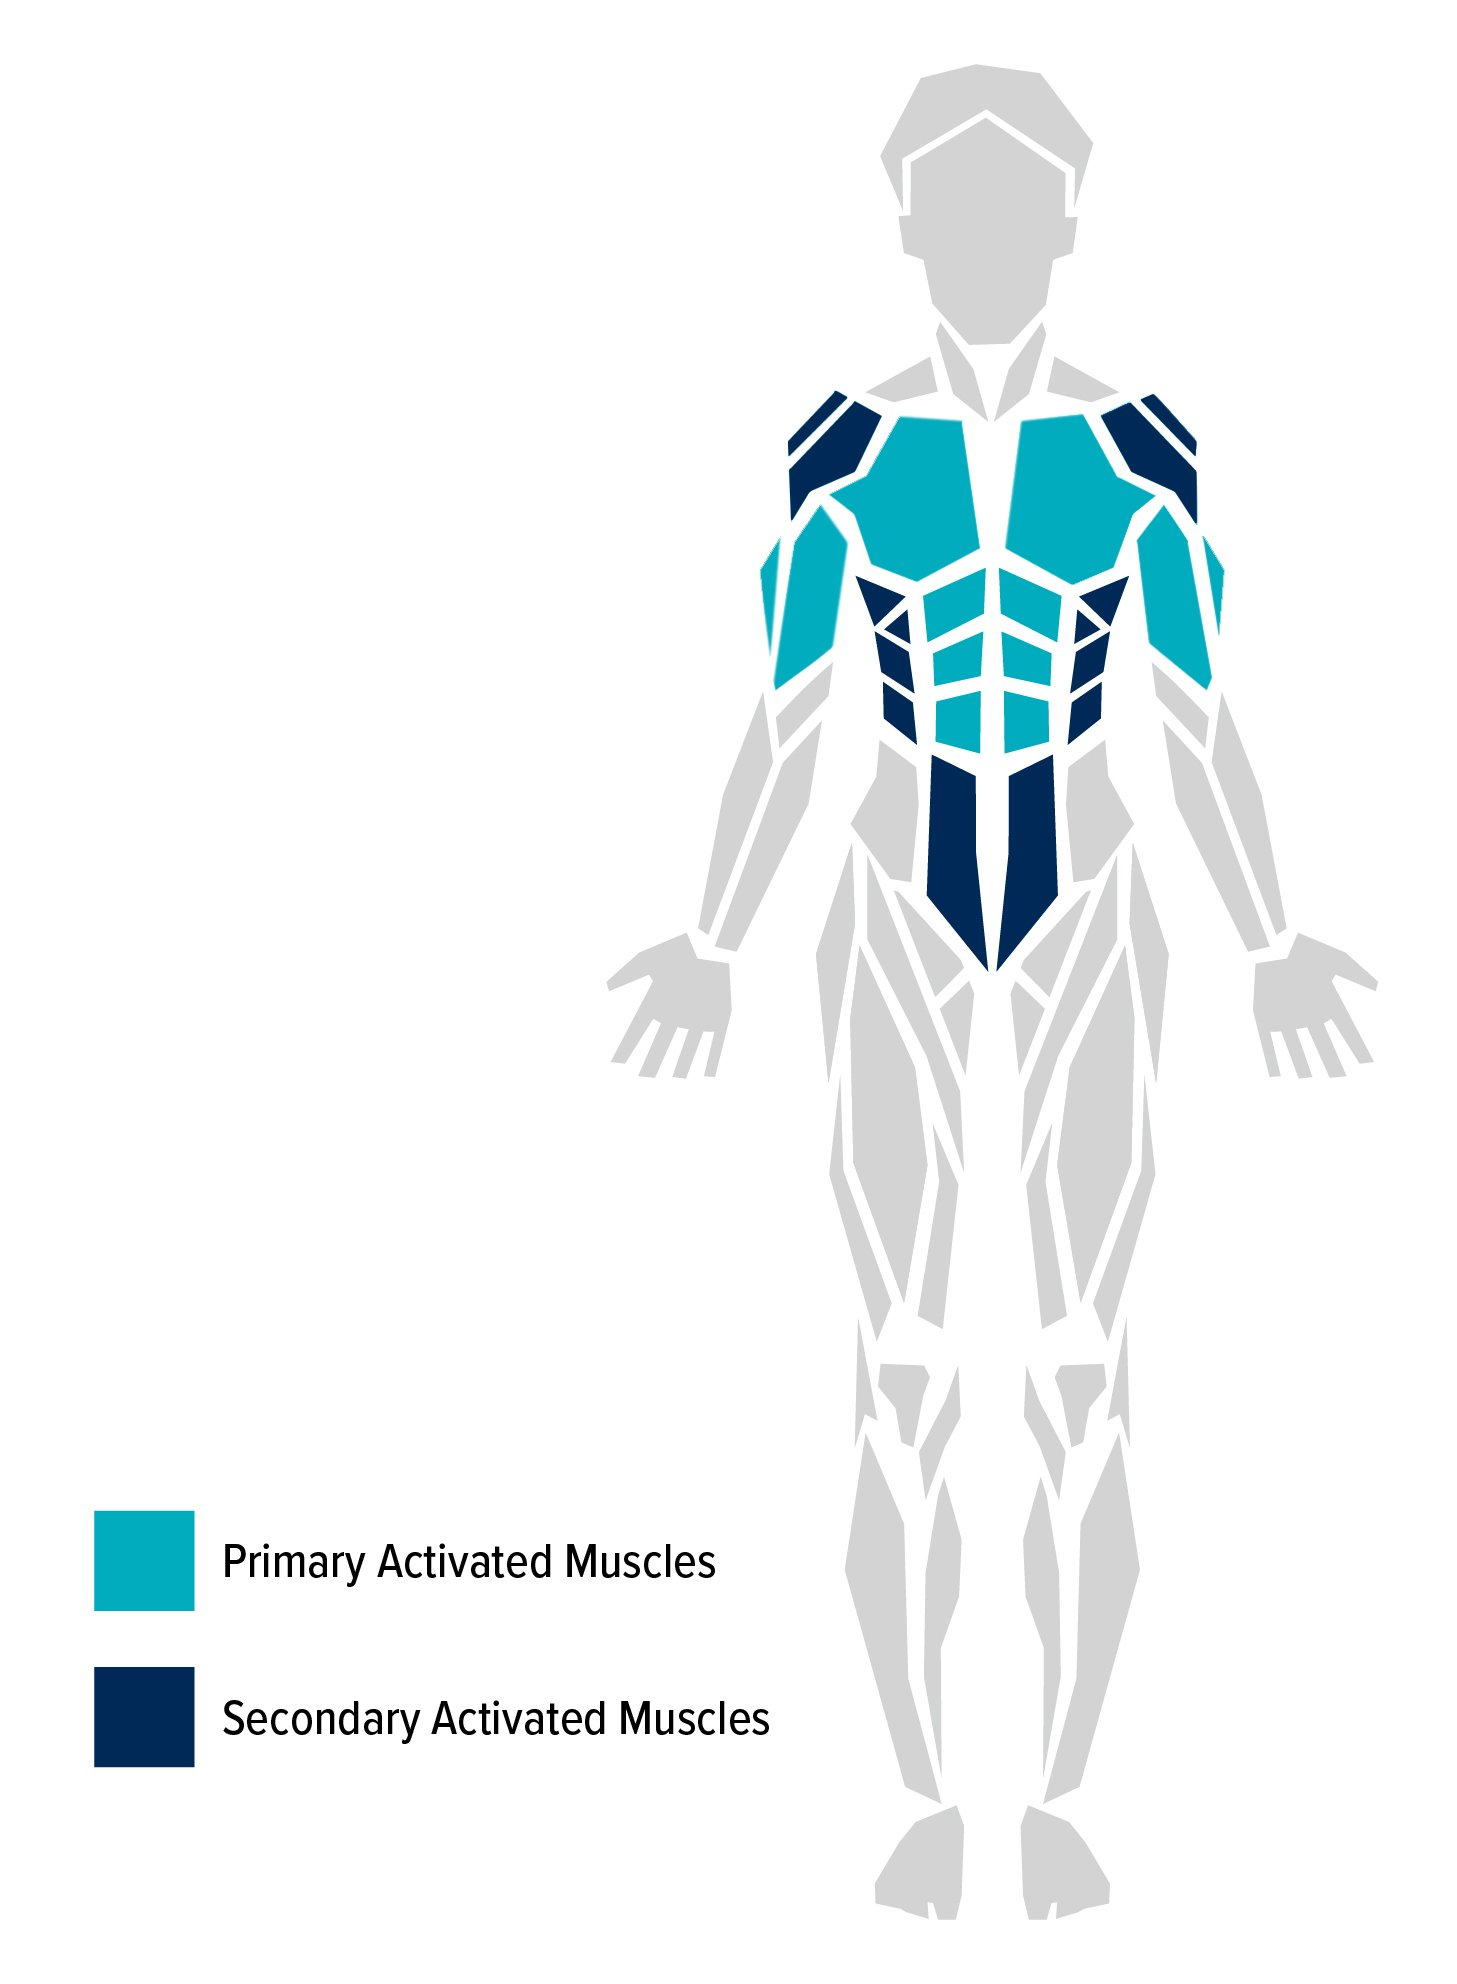 The human body and some of its muscles. Primary and secondary muscles worked by a push-up are highlighted.